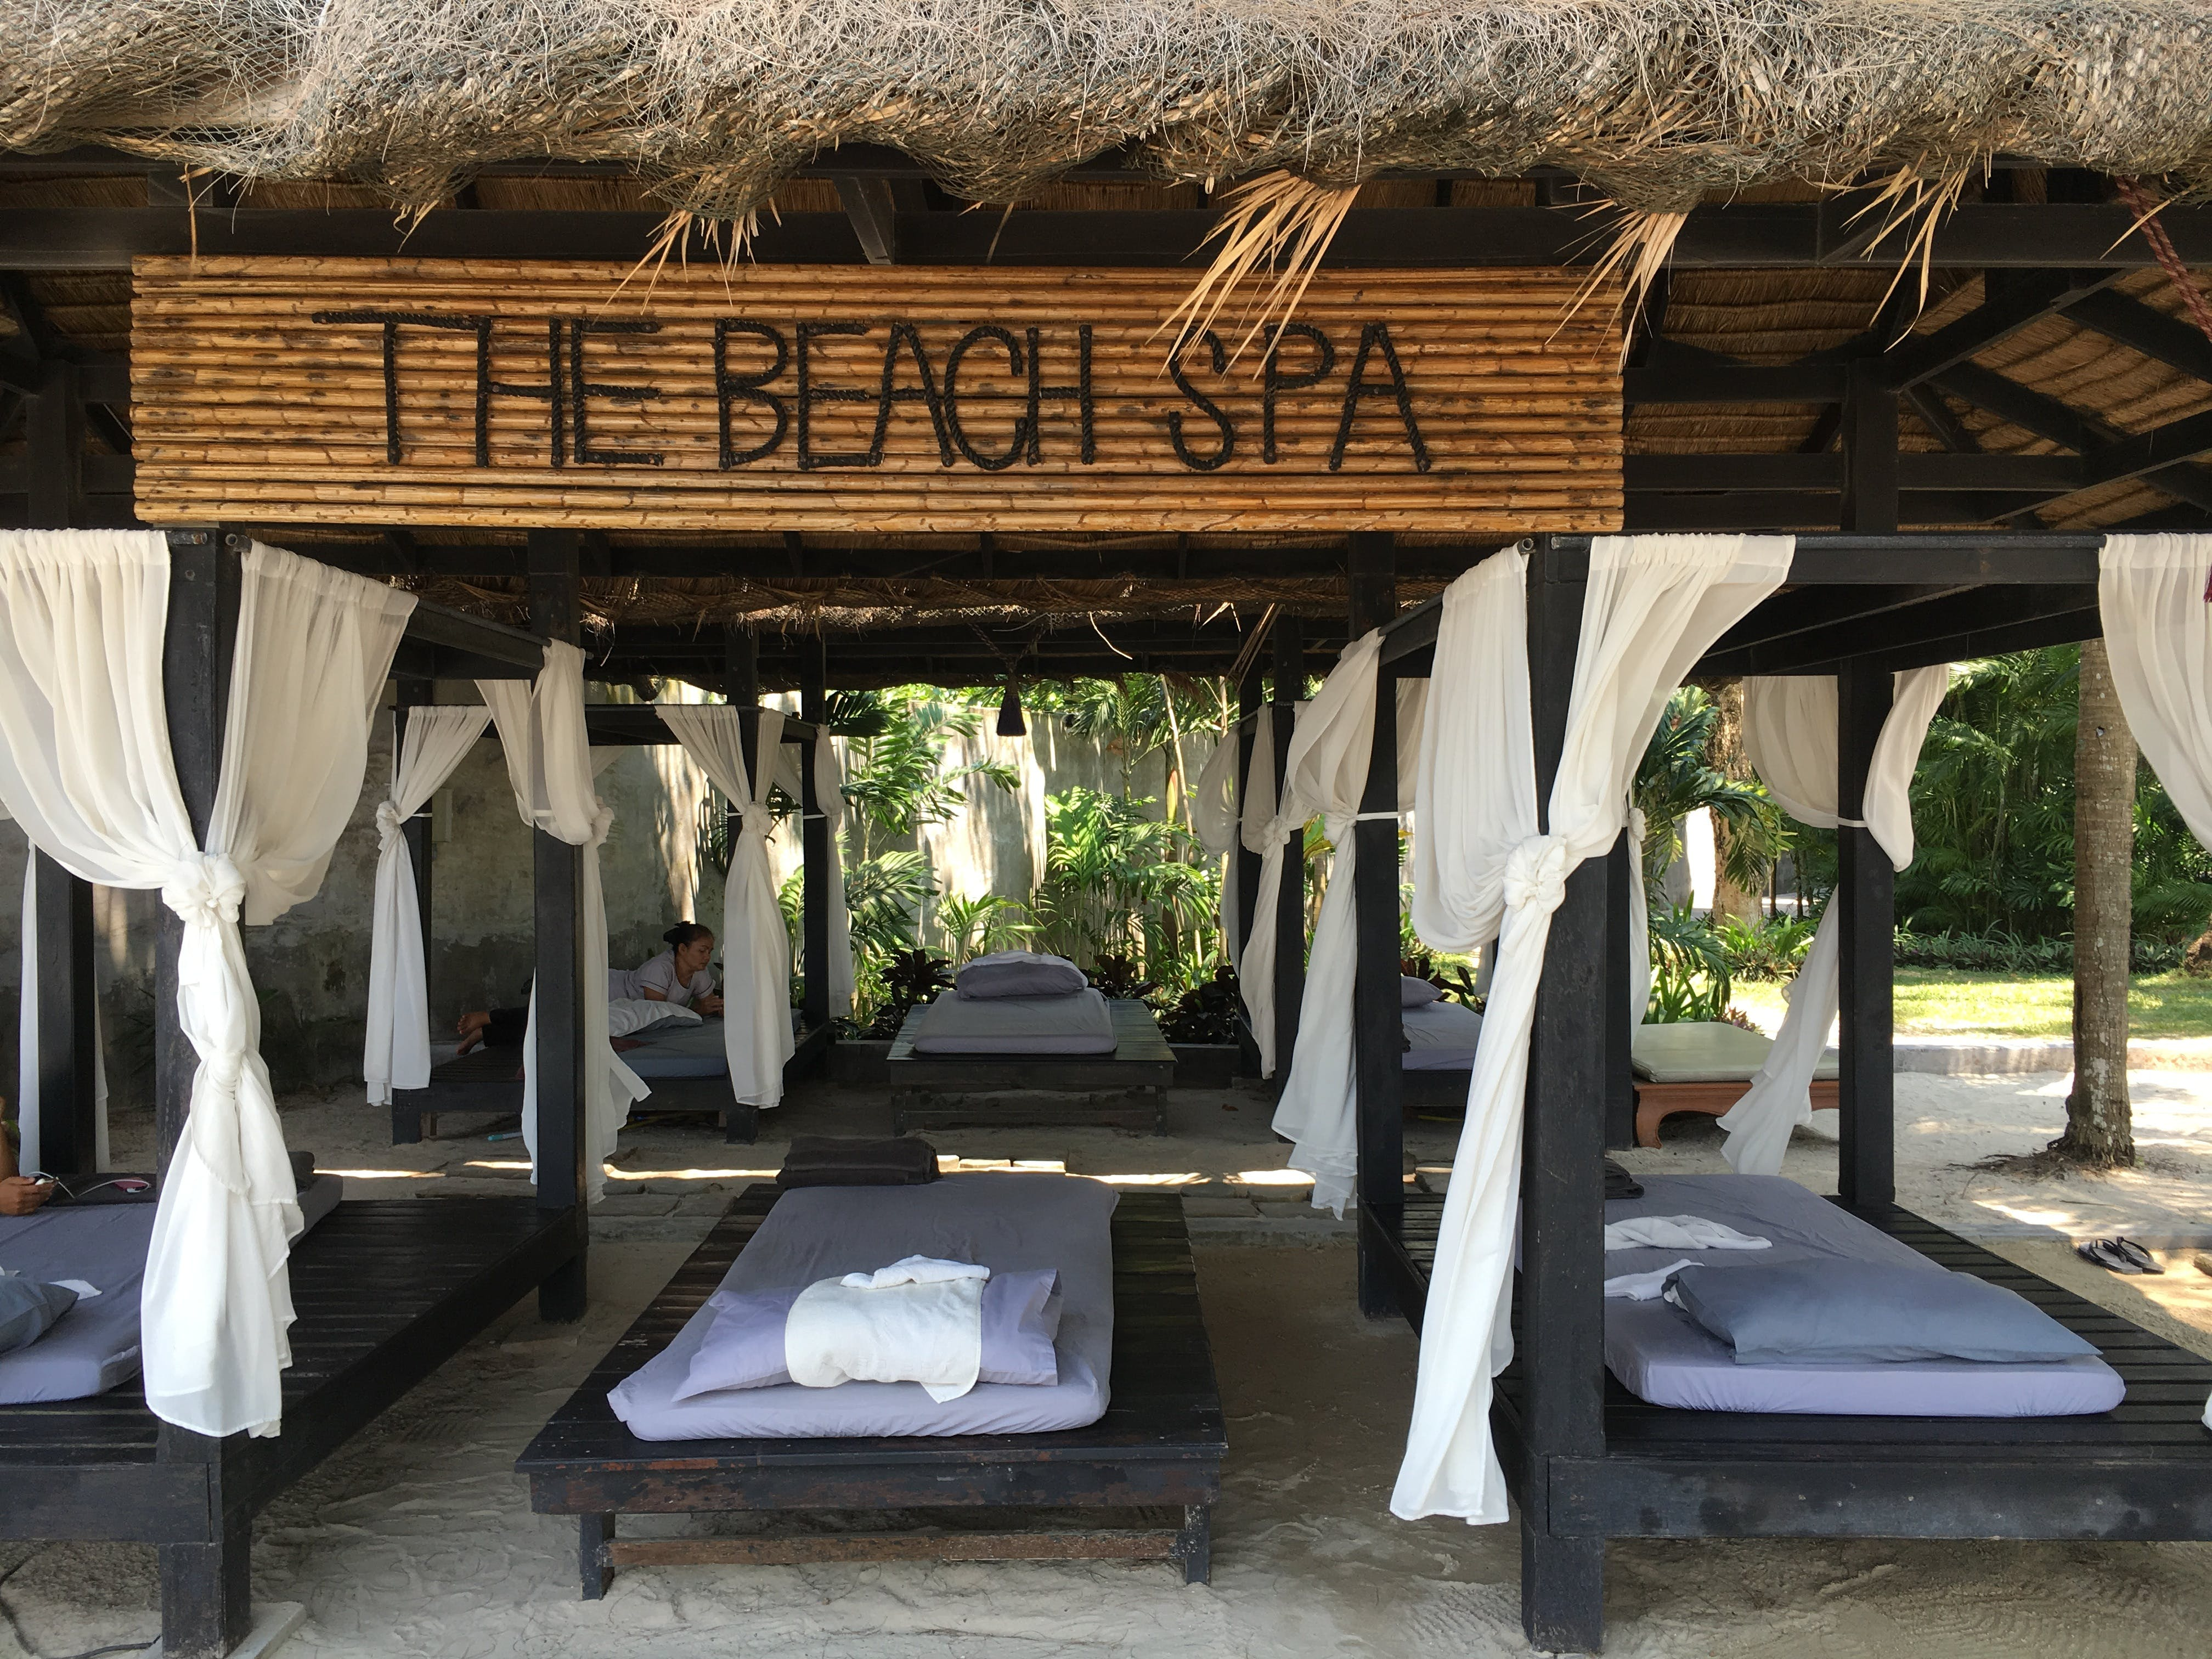 Free stock photo of asia, massage, thailand, koh chang